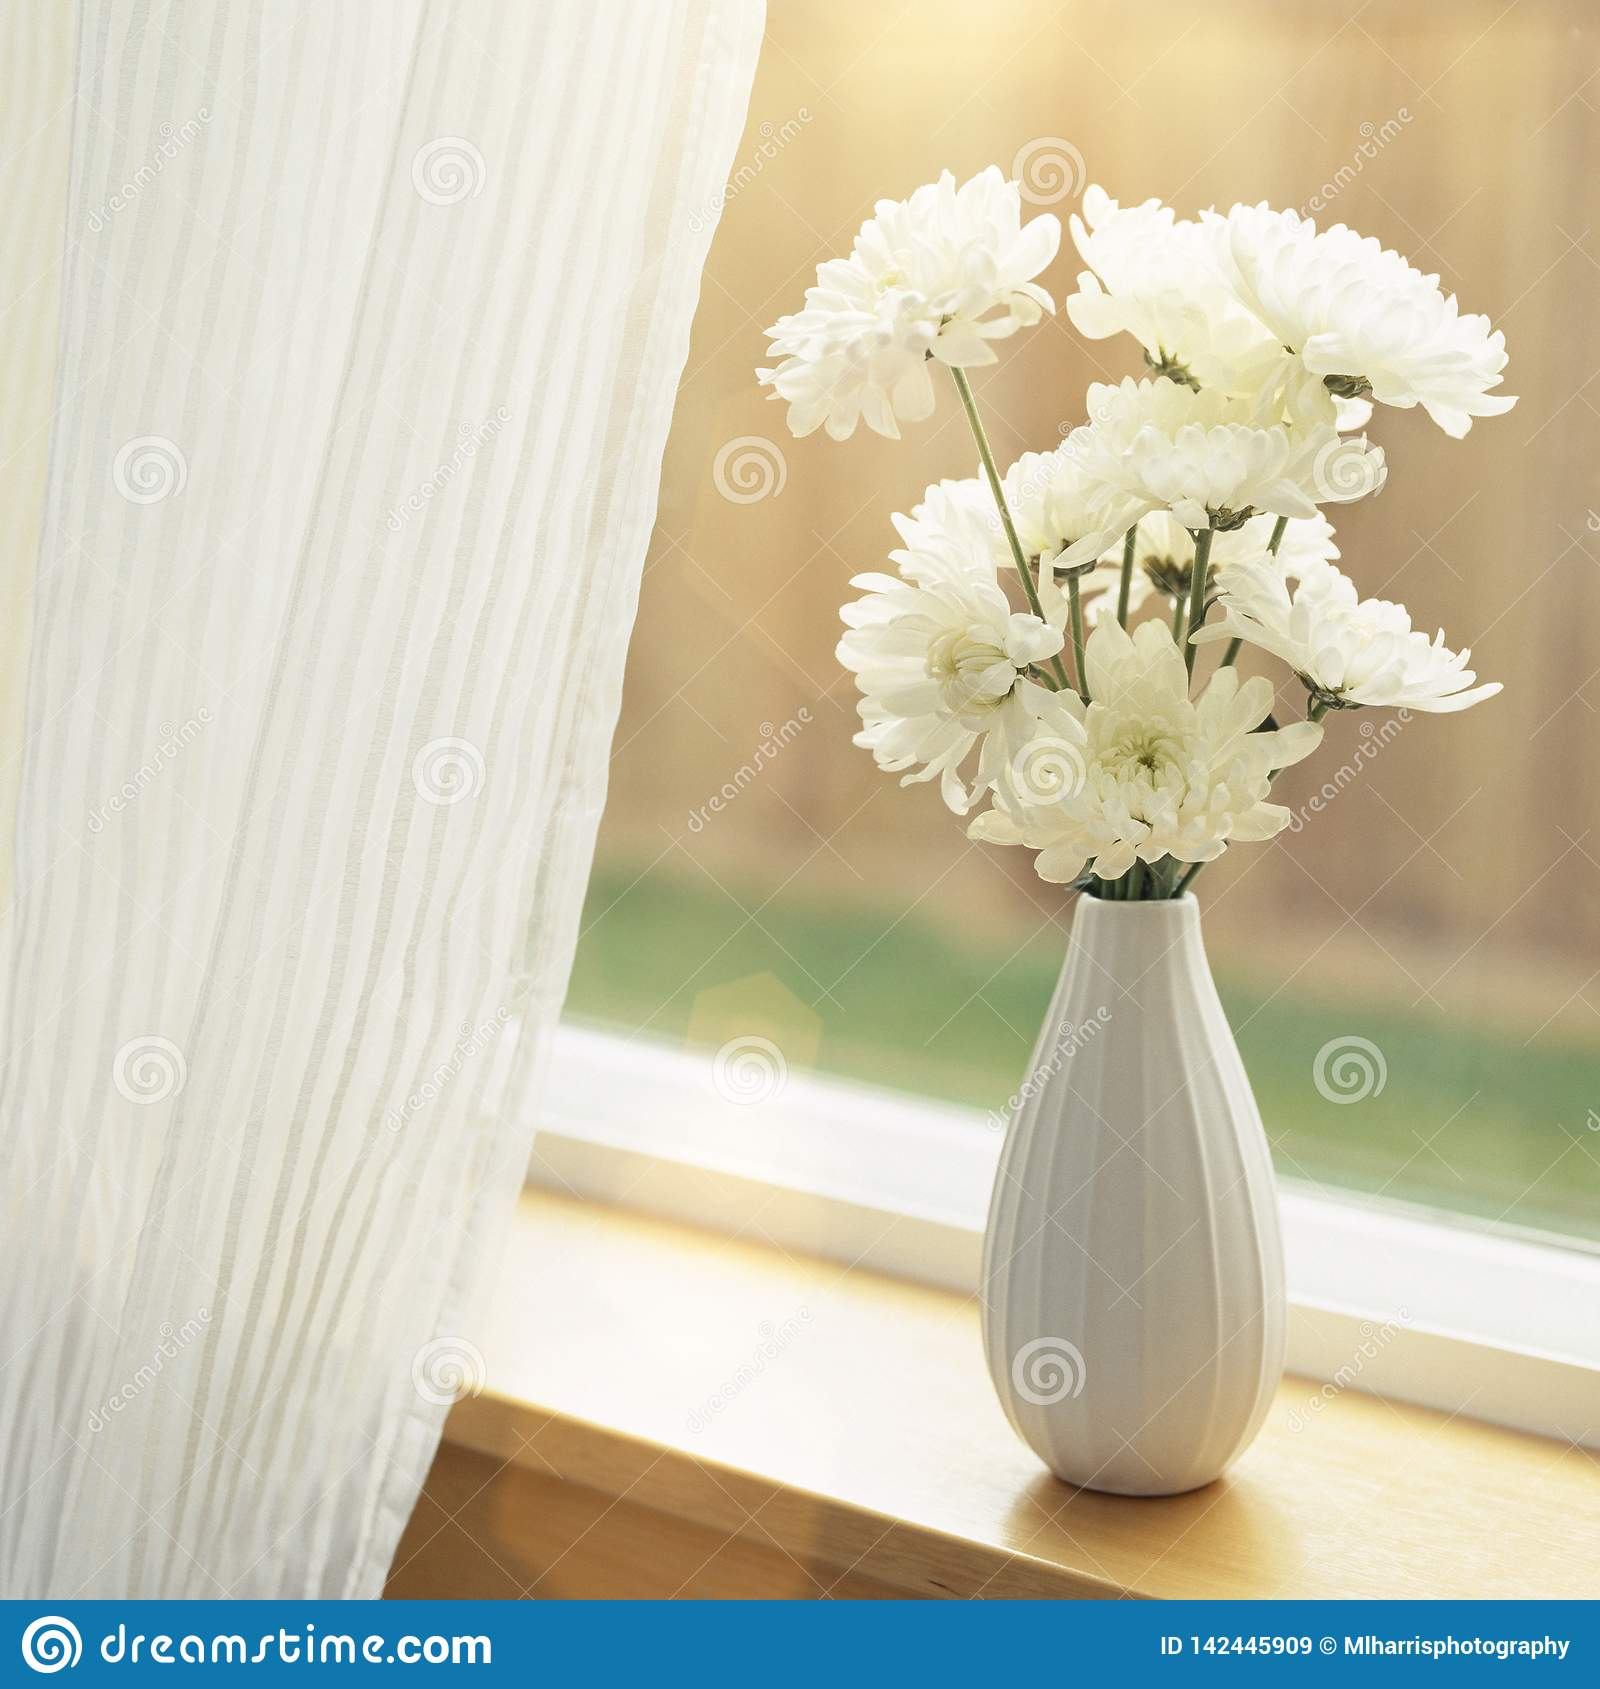 Fresh flowers in vase on windowsill with sheer fabric curtains window coverings. Simple, natural, home interior decor.